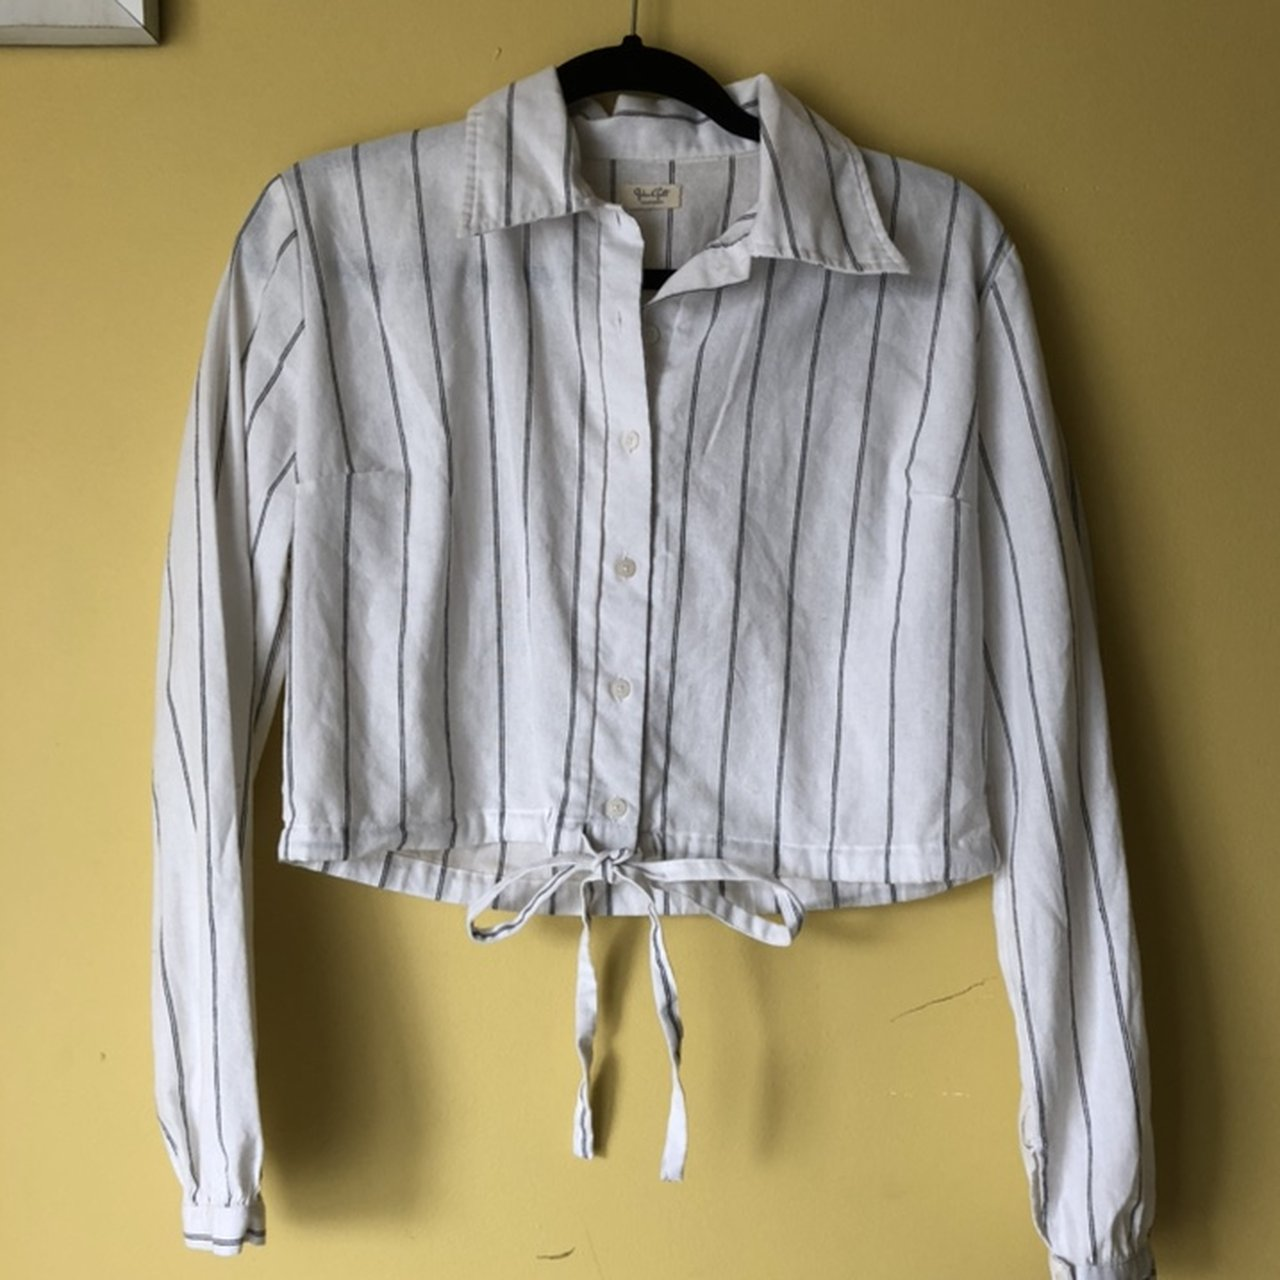 5f2a567d1c903 Brandy Melville Lenny white and black striped button down in - Depop